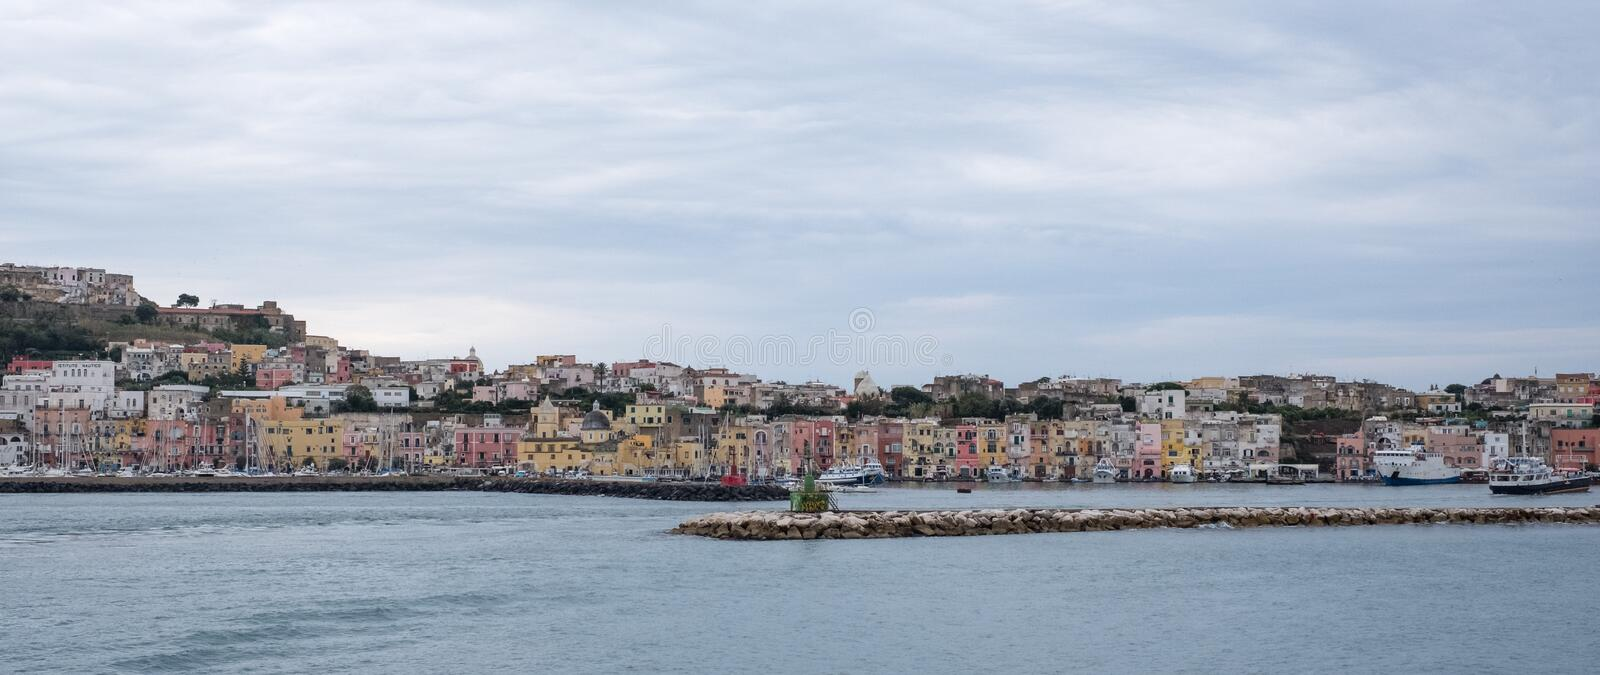 Panoramic photo of the harbour front with pastel coloured houses on the island of Procida Italy, photographed from the water. stock photography